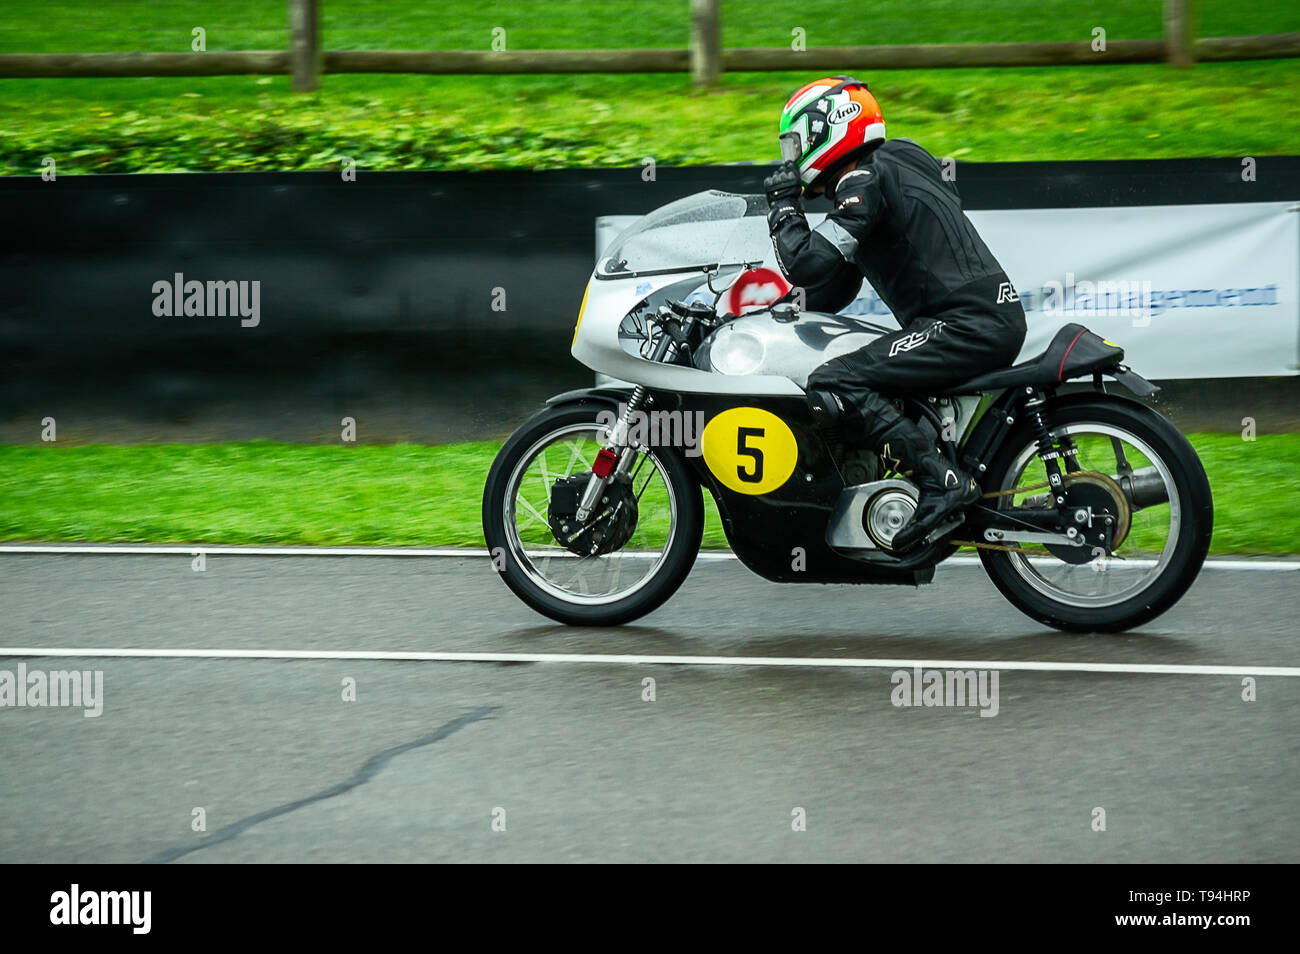 A classic motorbike on the track at Goodwood Revival 2017 Stock Photo